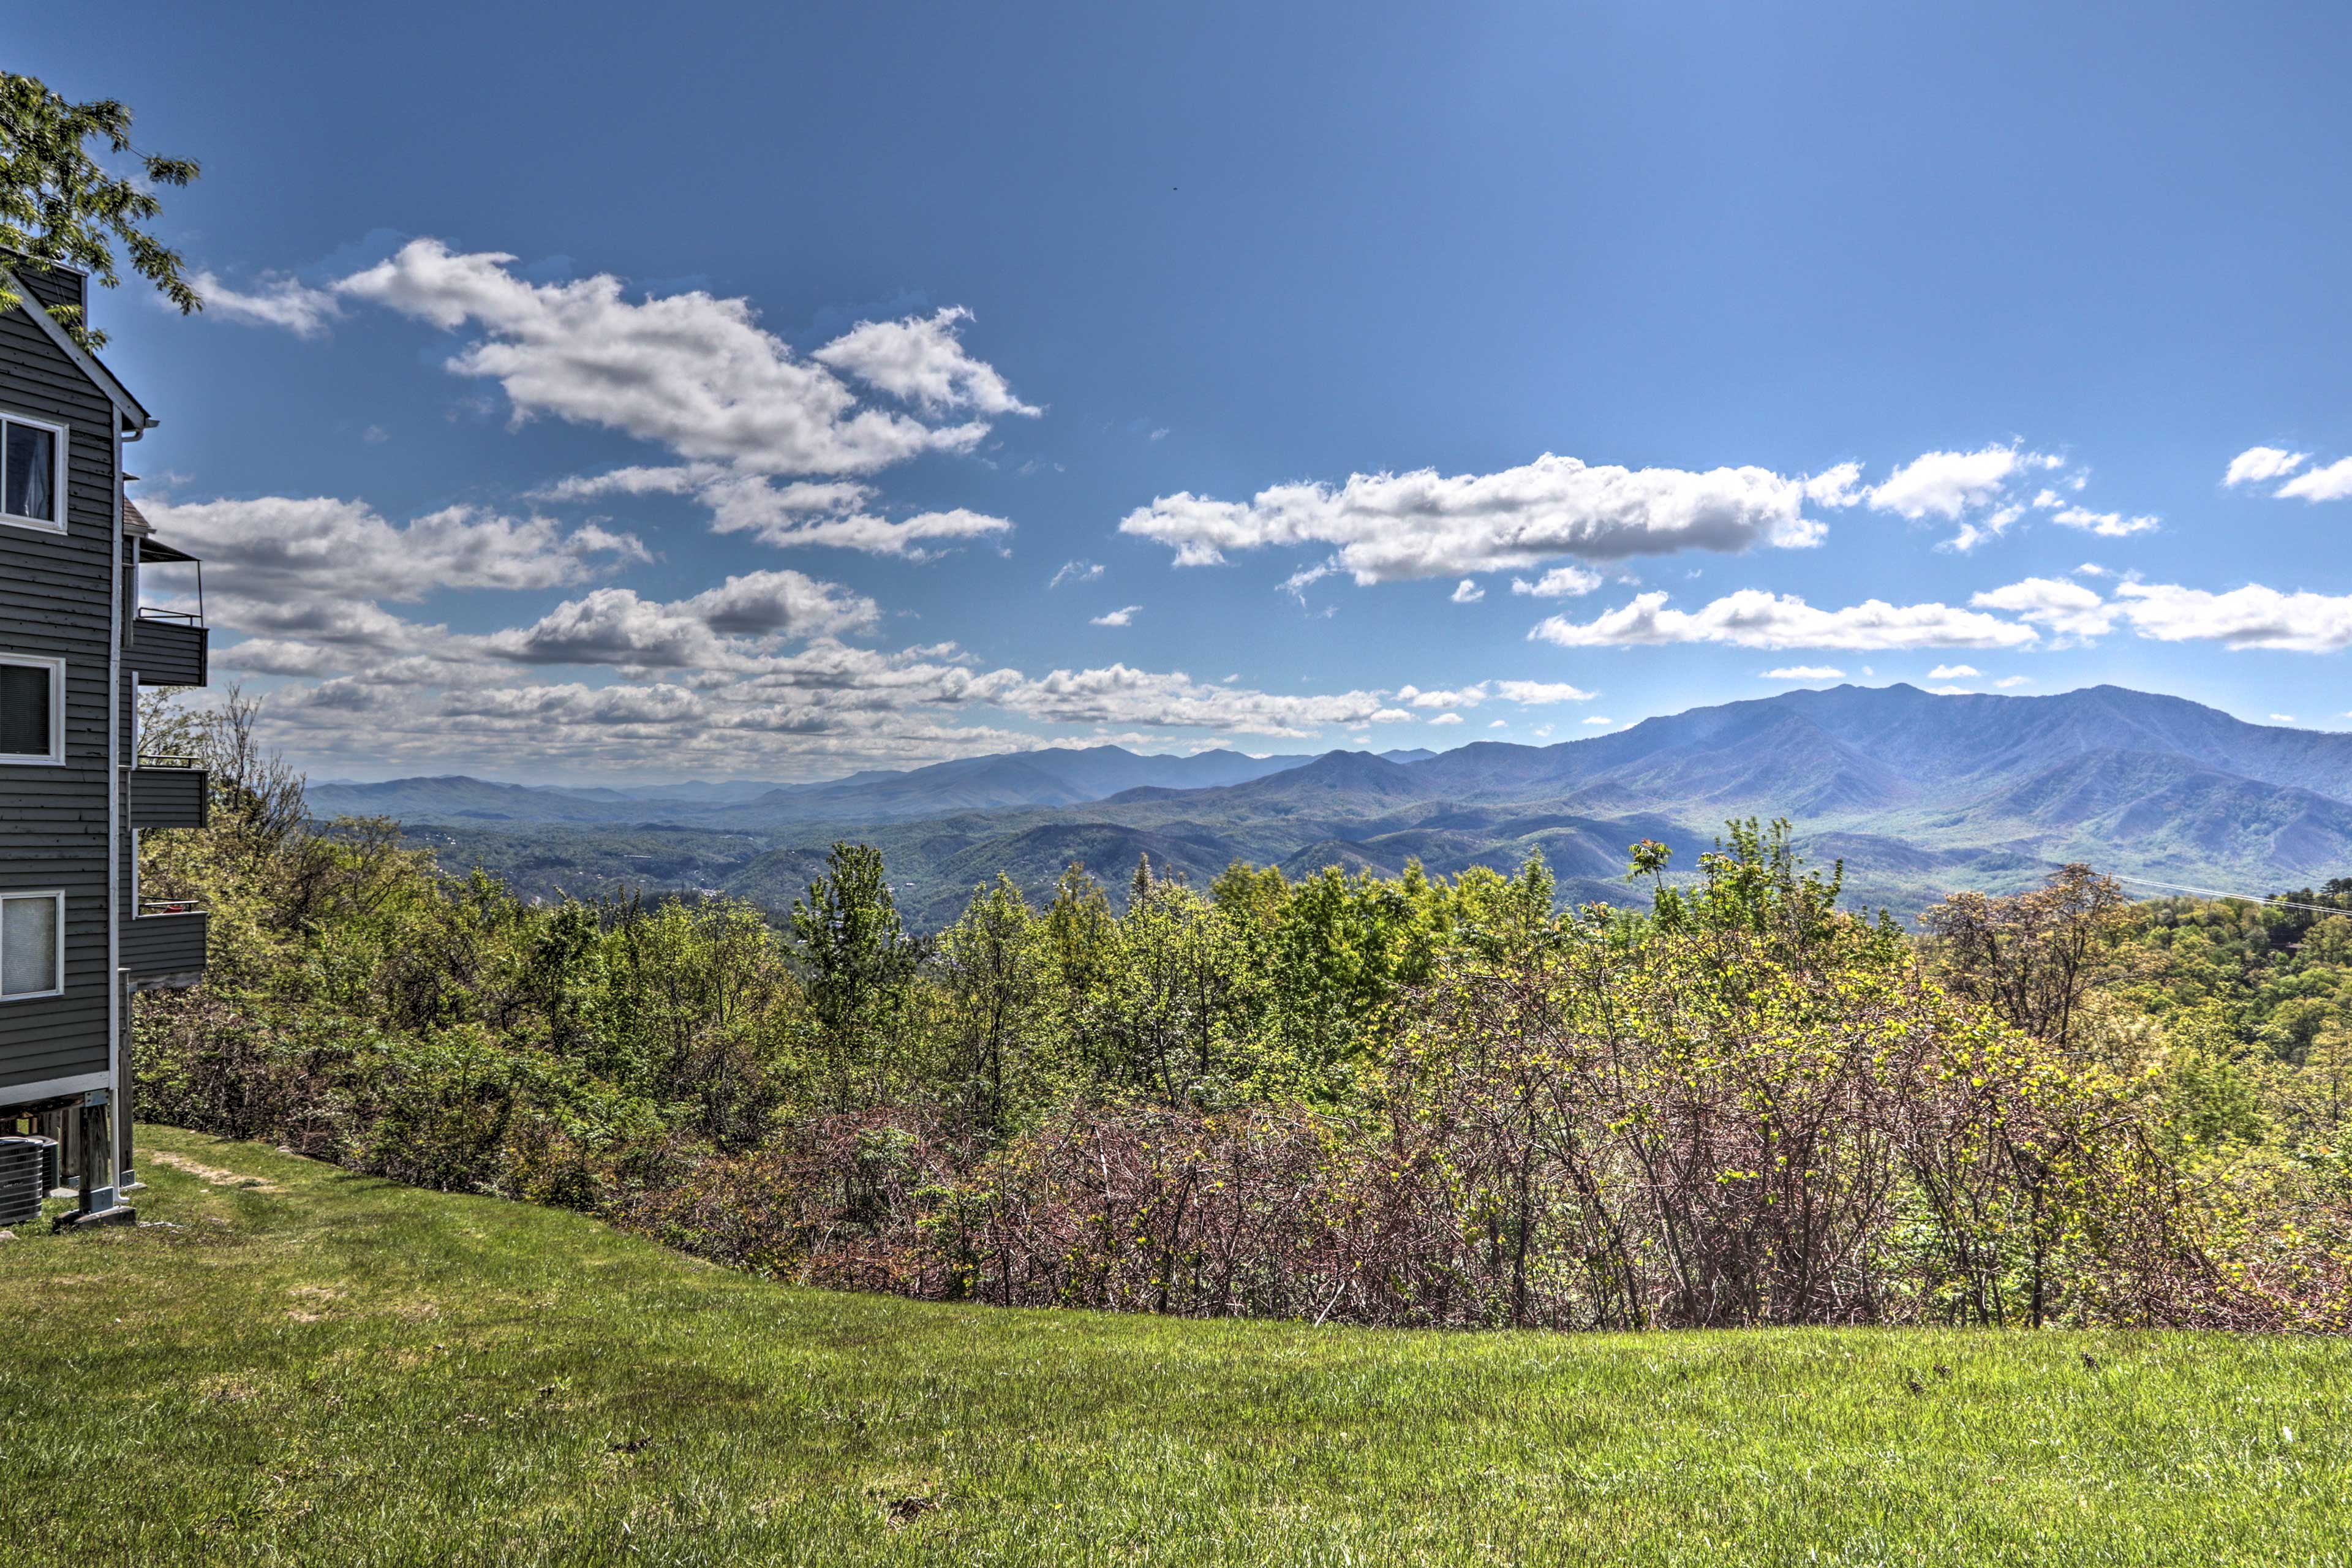 Explore the Great Smoky Mountain National Park!